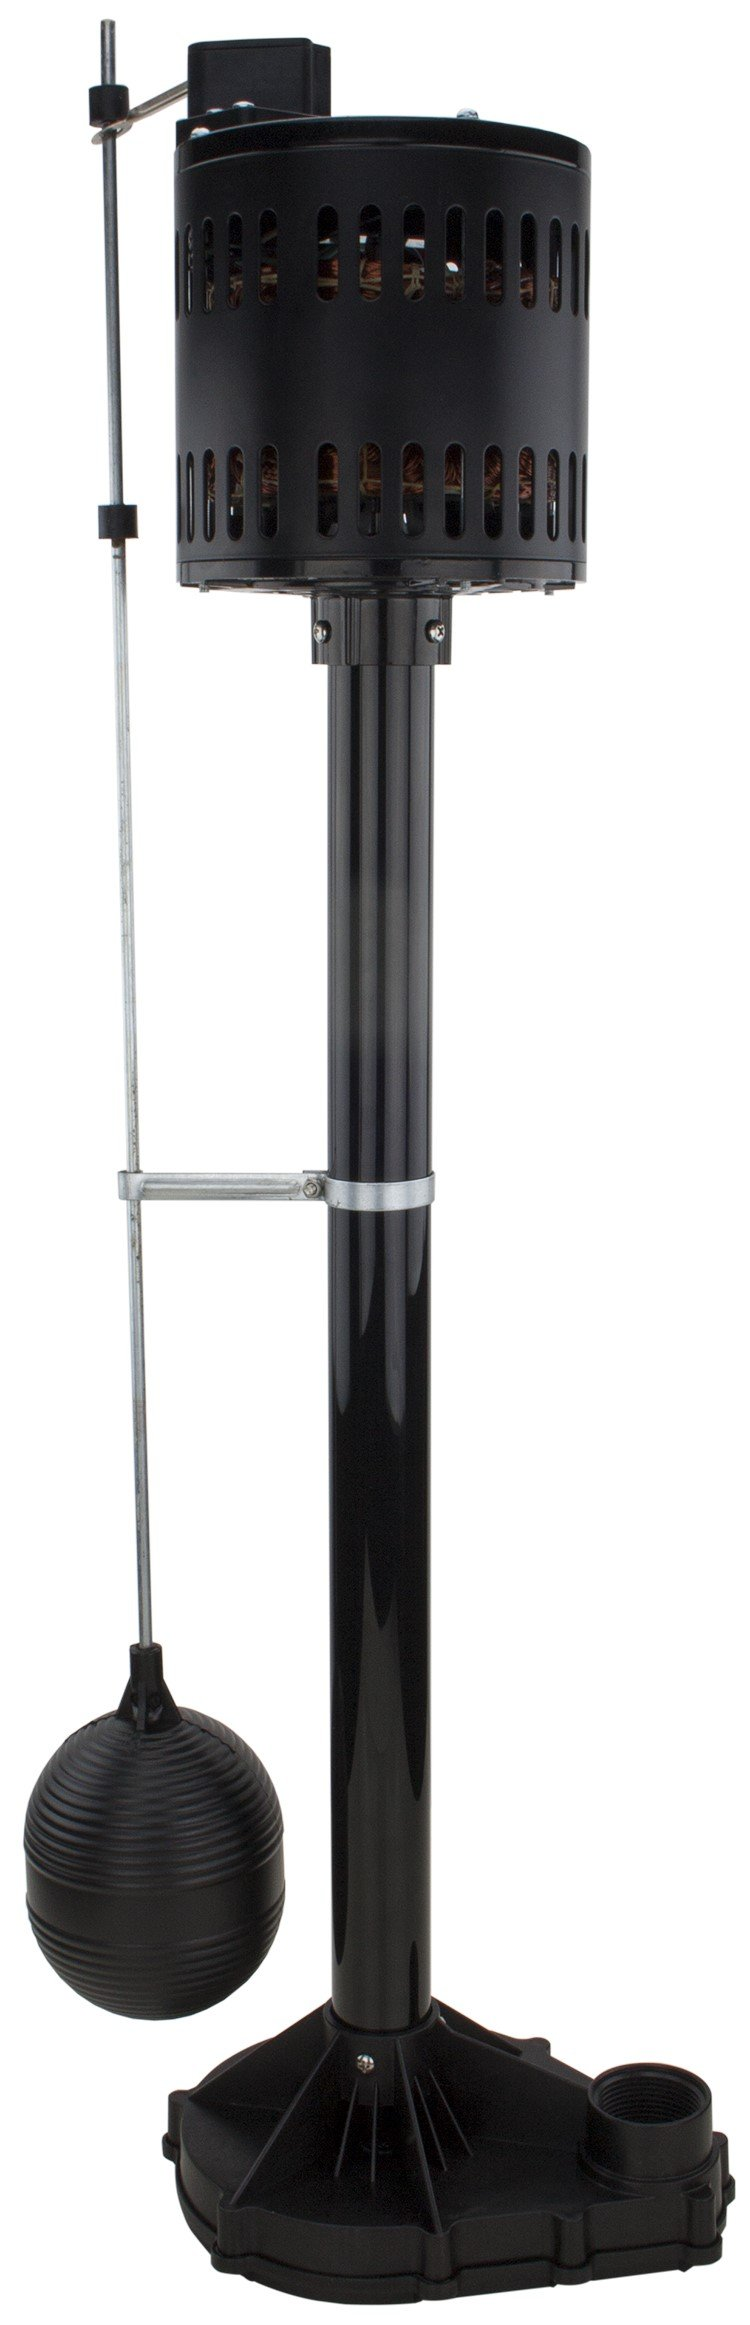 Star 3CEH 1/3 HP Thermoplastic Column Pedestal Sump Pump with Vertical Float Switch